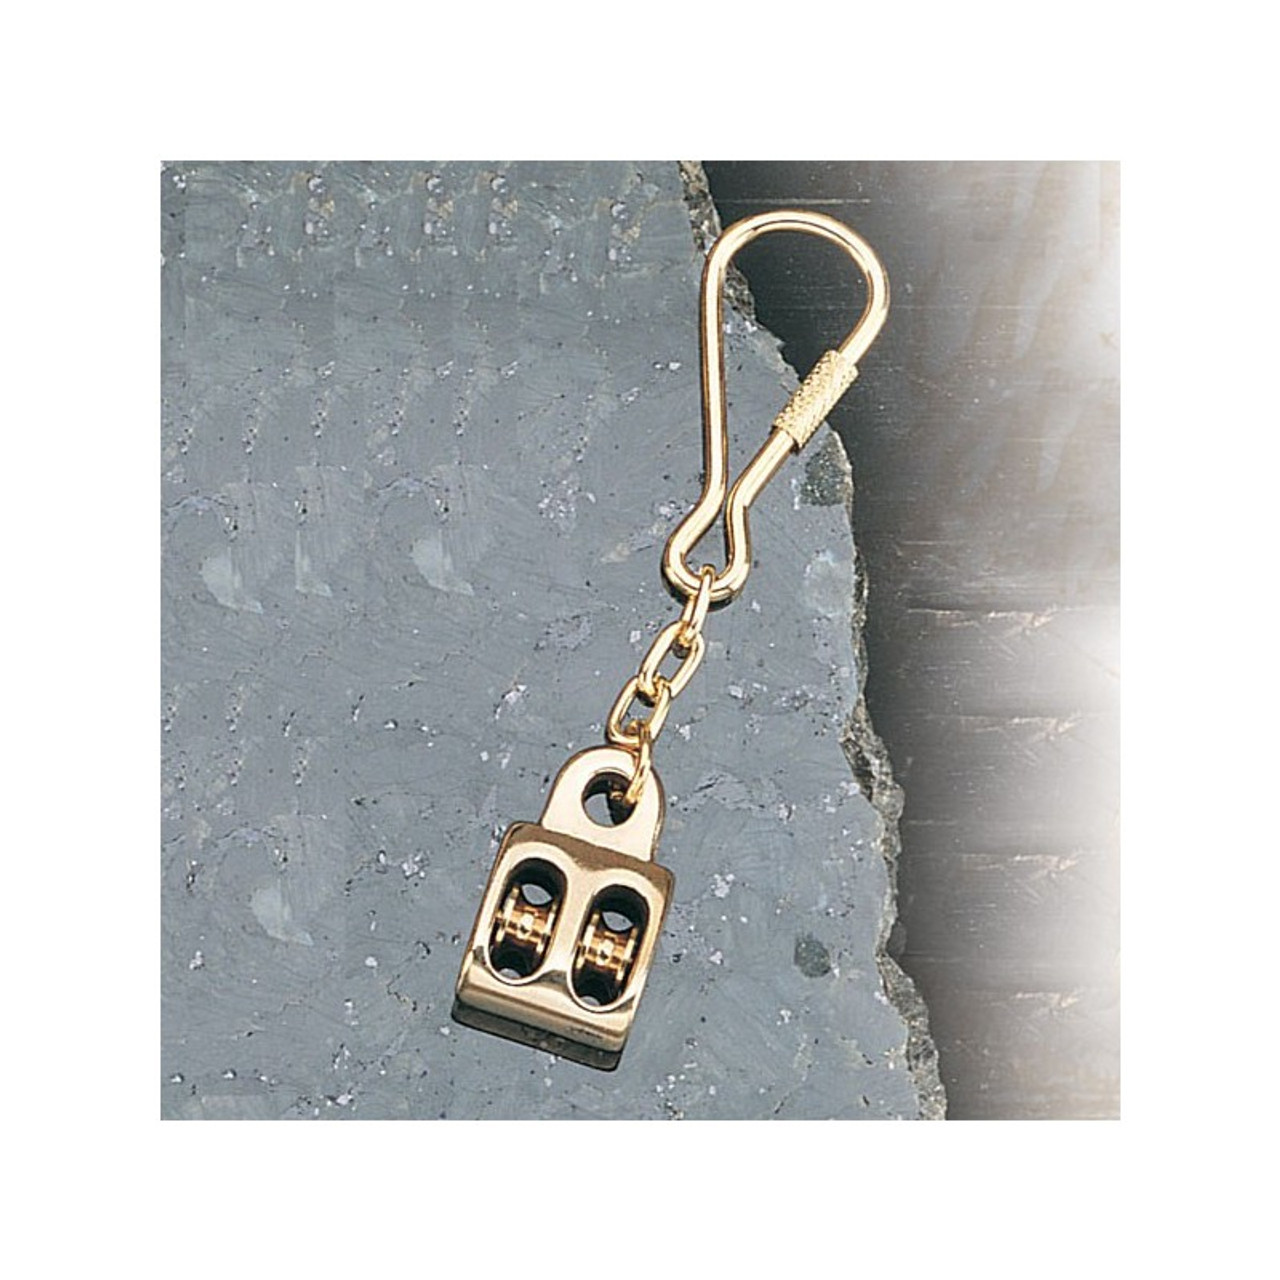 Brass Key Chain -Ship's Pulley